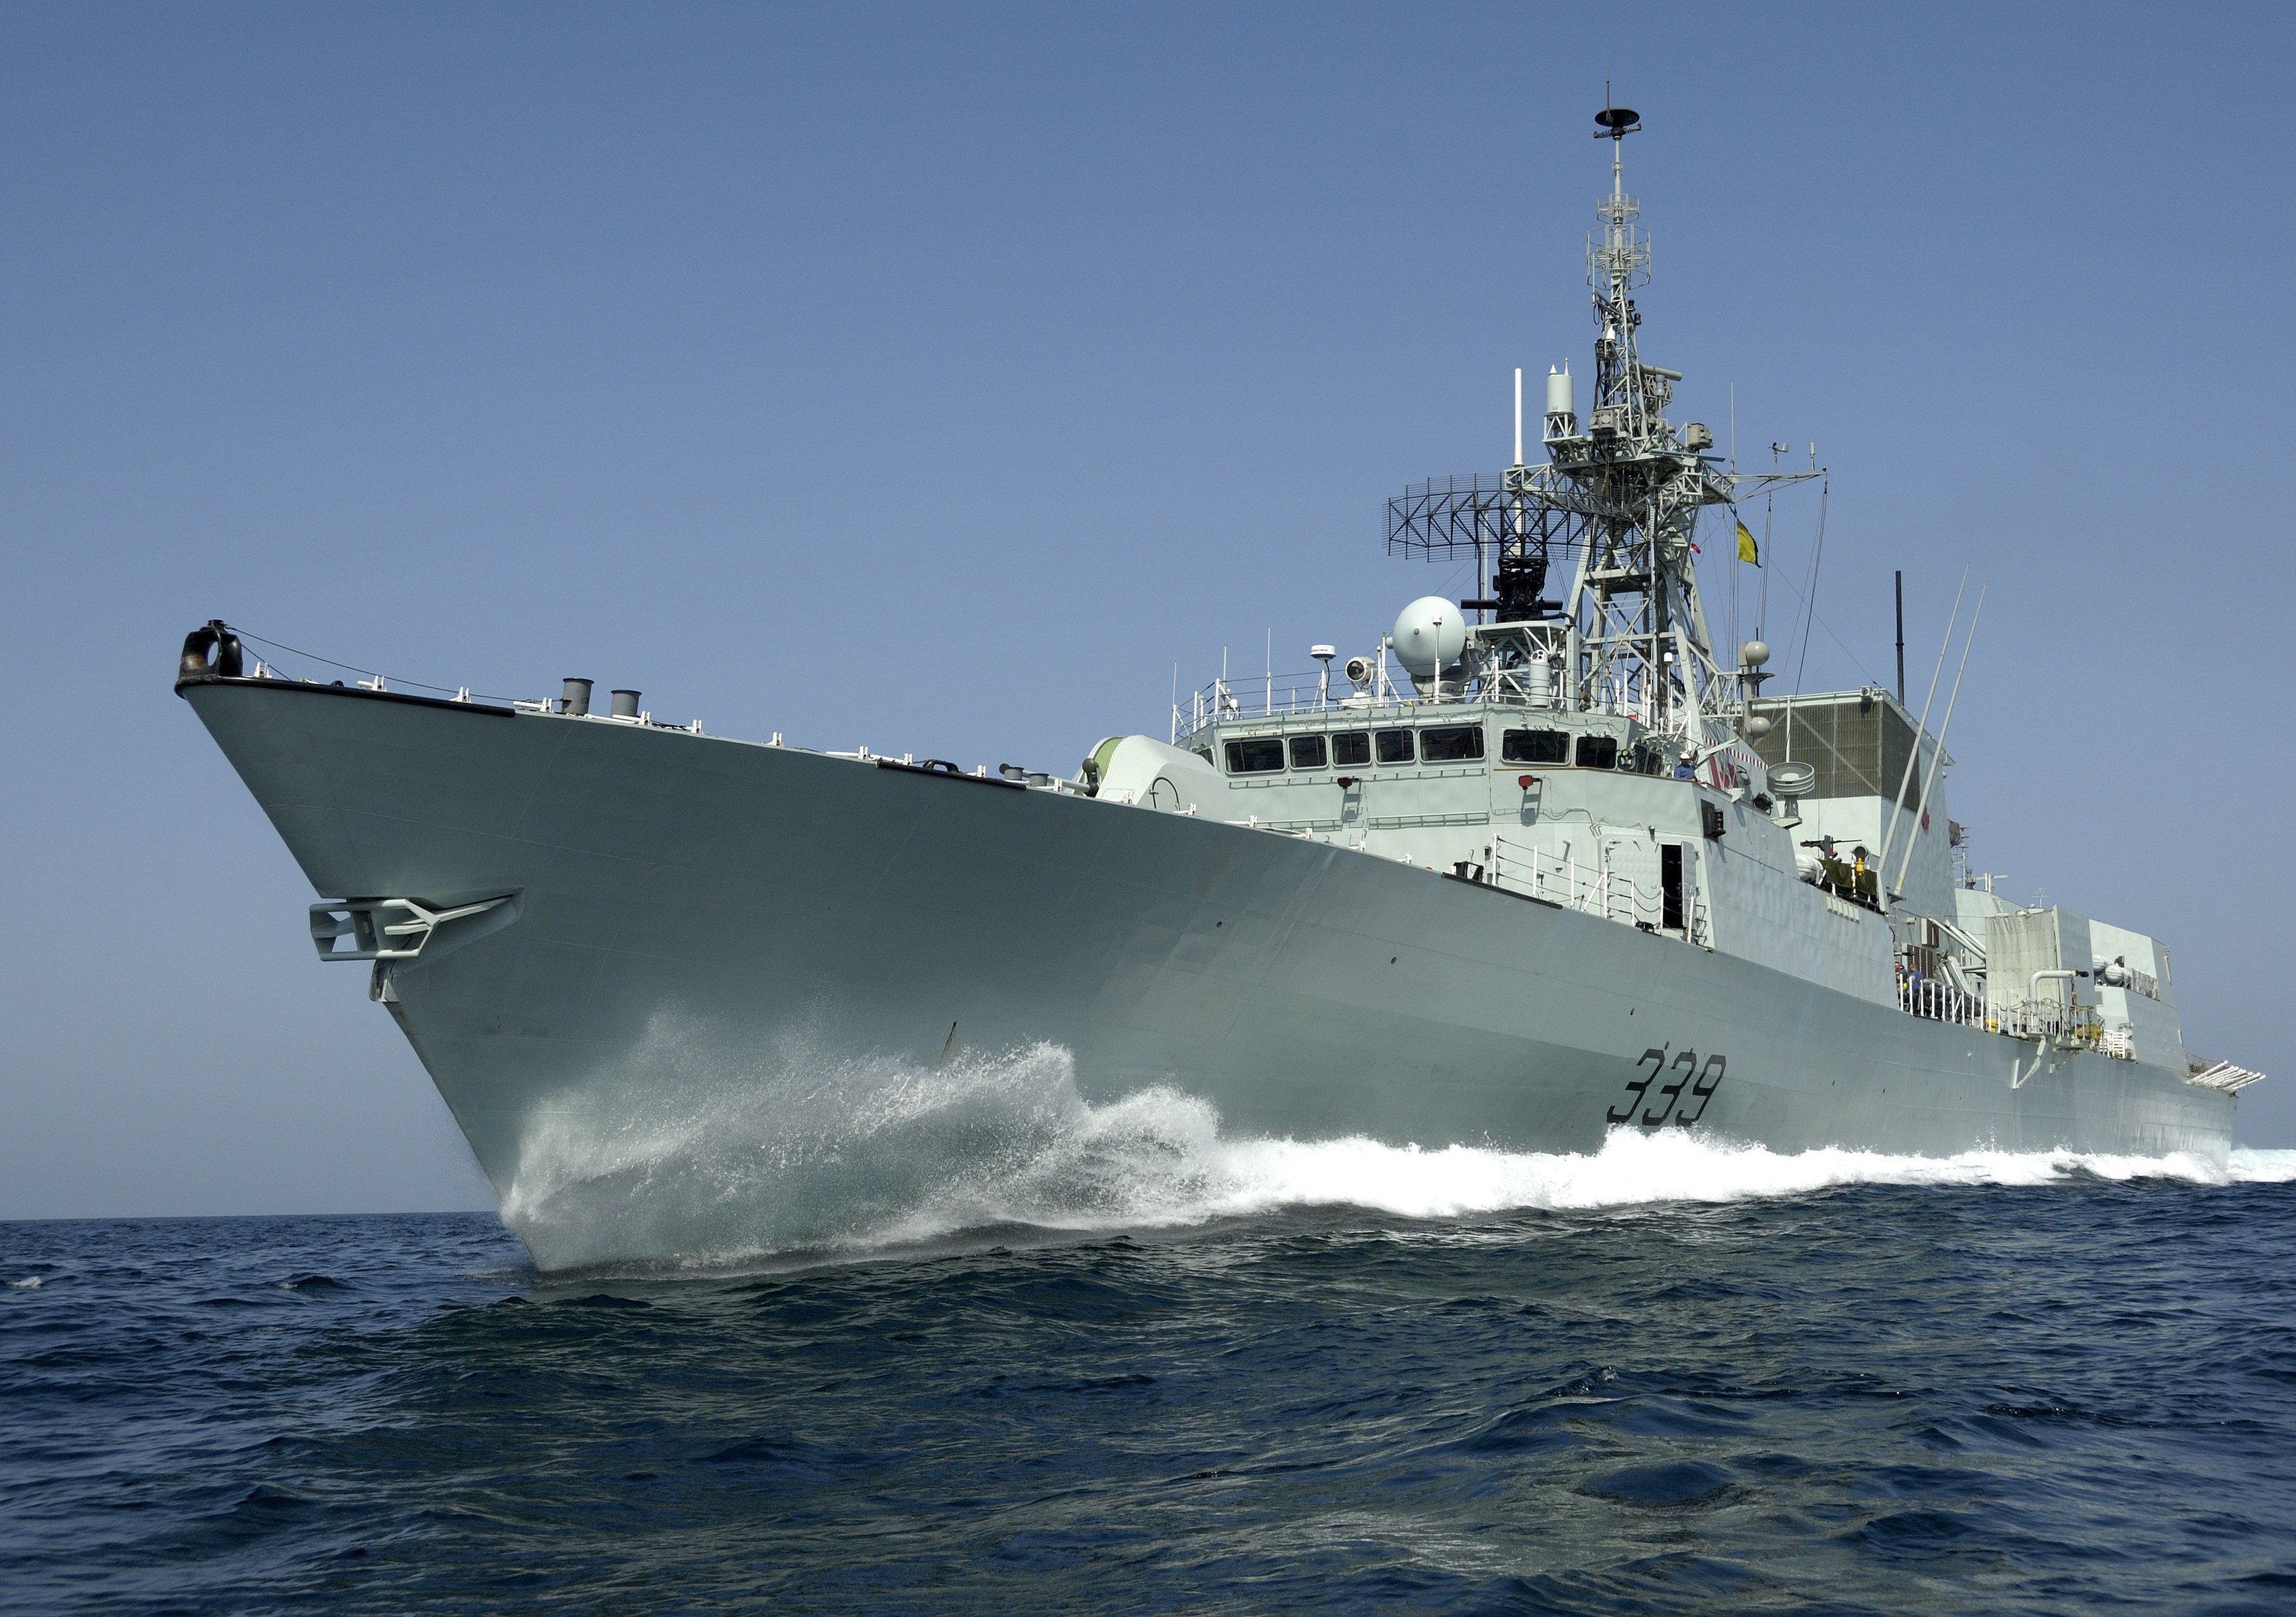 Military Canadian Navy Frigate HMCS Charlottetown (FFH